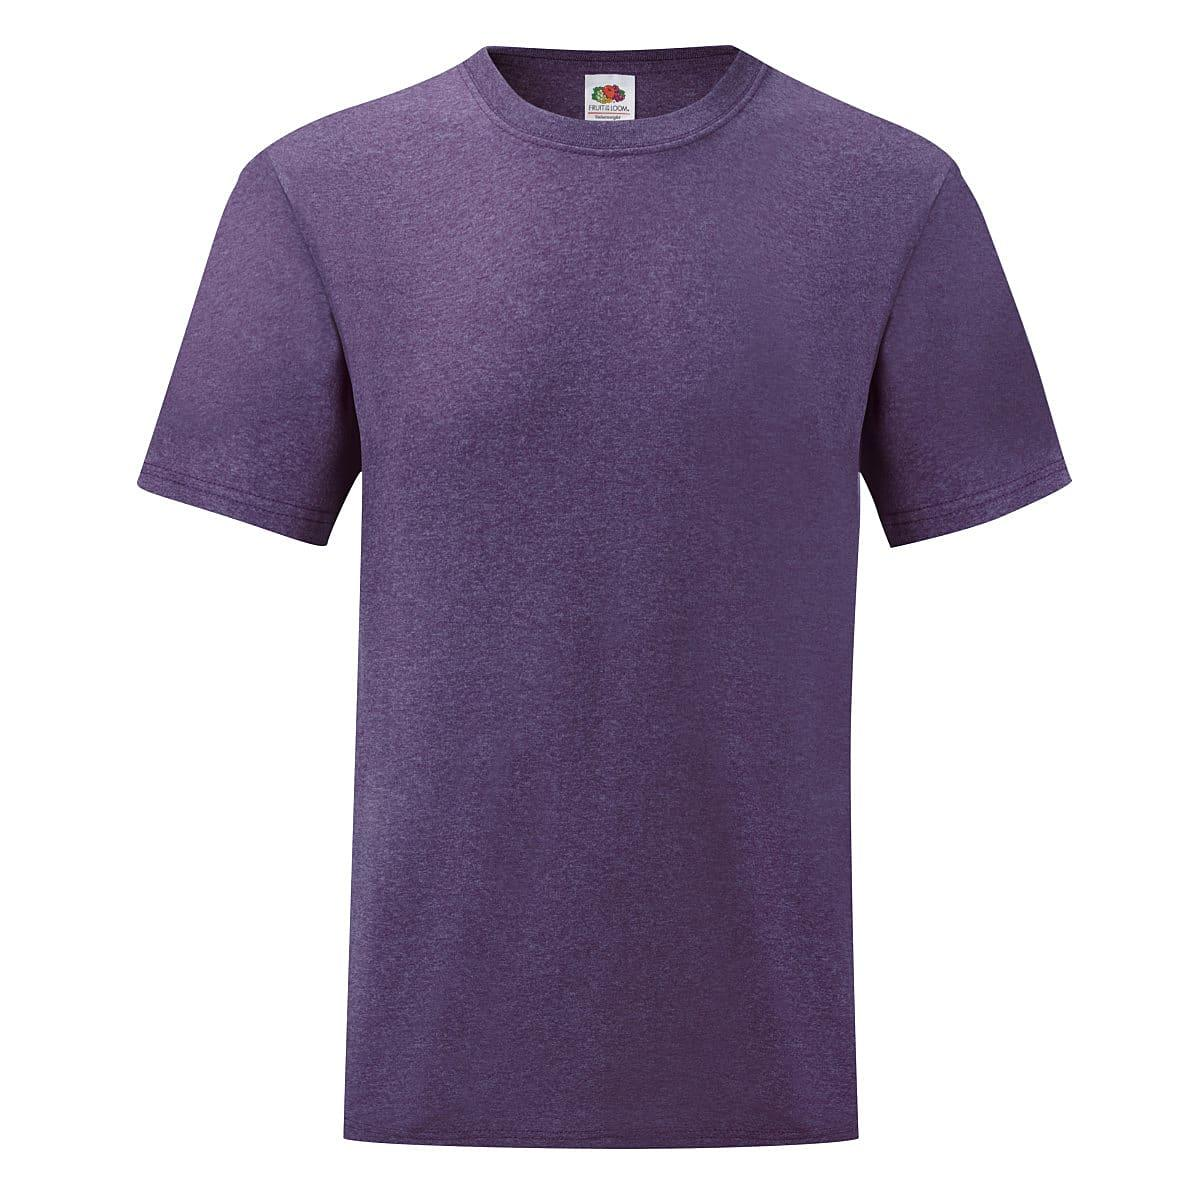 Fruit Of The Loom Valueweight T-Shirt in Heather Purple (Product Code: 61036)